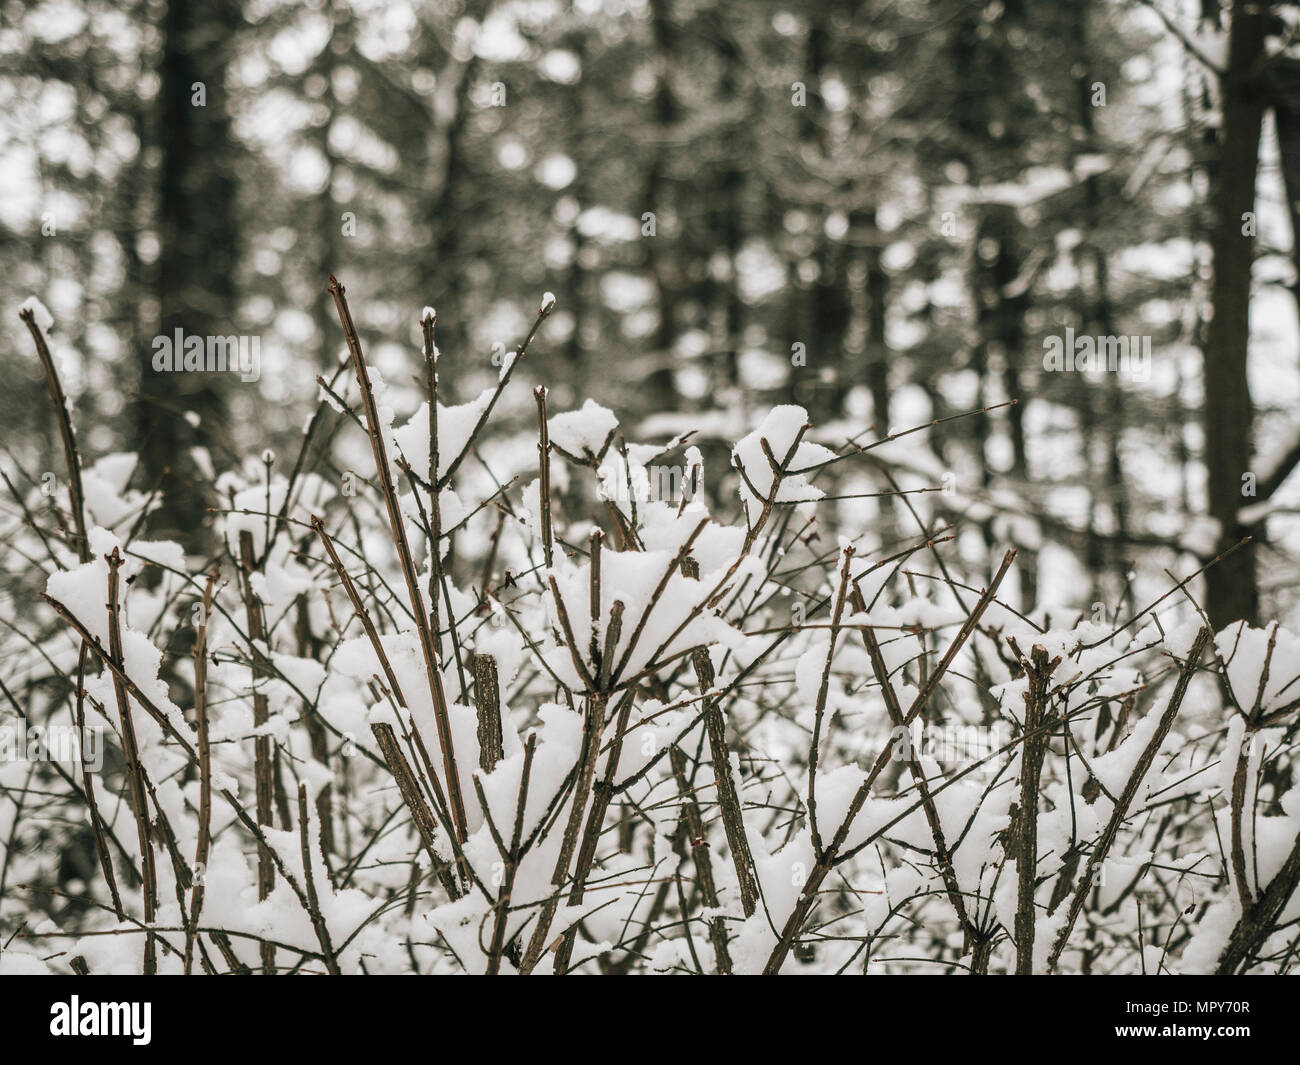 Close-up of snow covered dead plants in forest - Stock Image